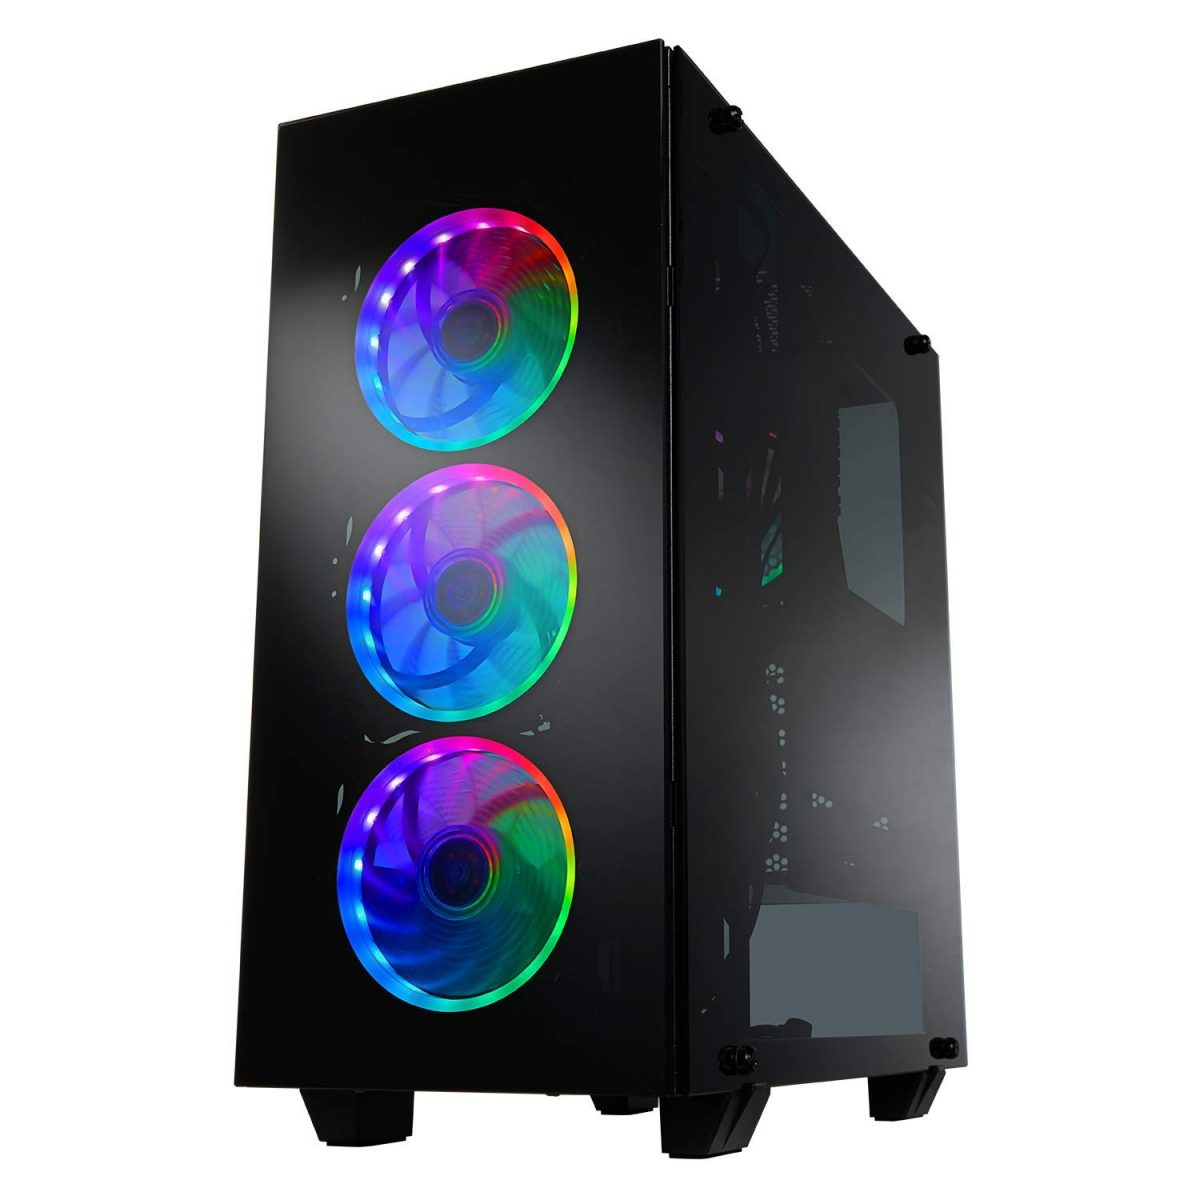 Comet Pro Medium Gaming PC i5-10400